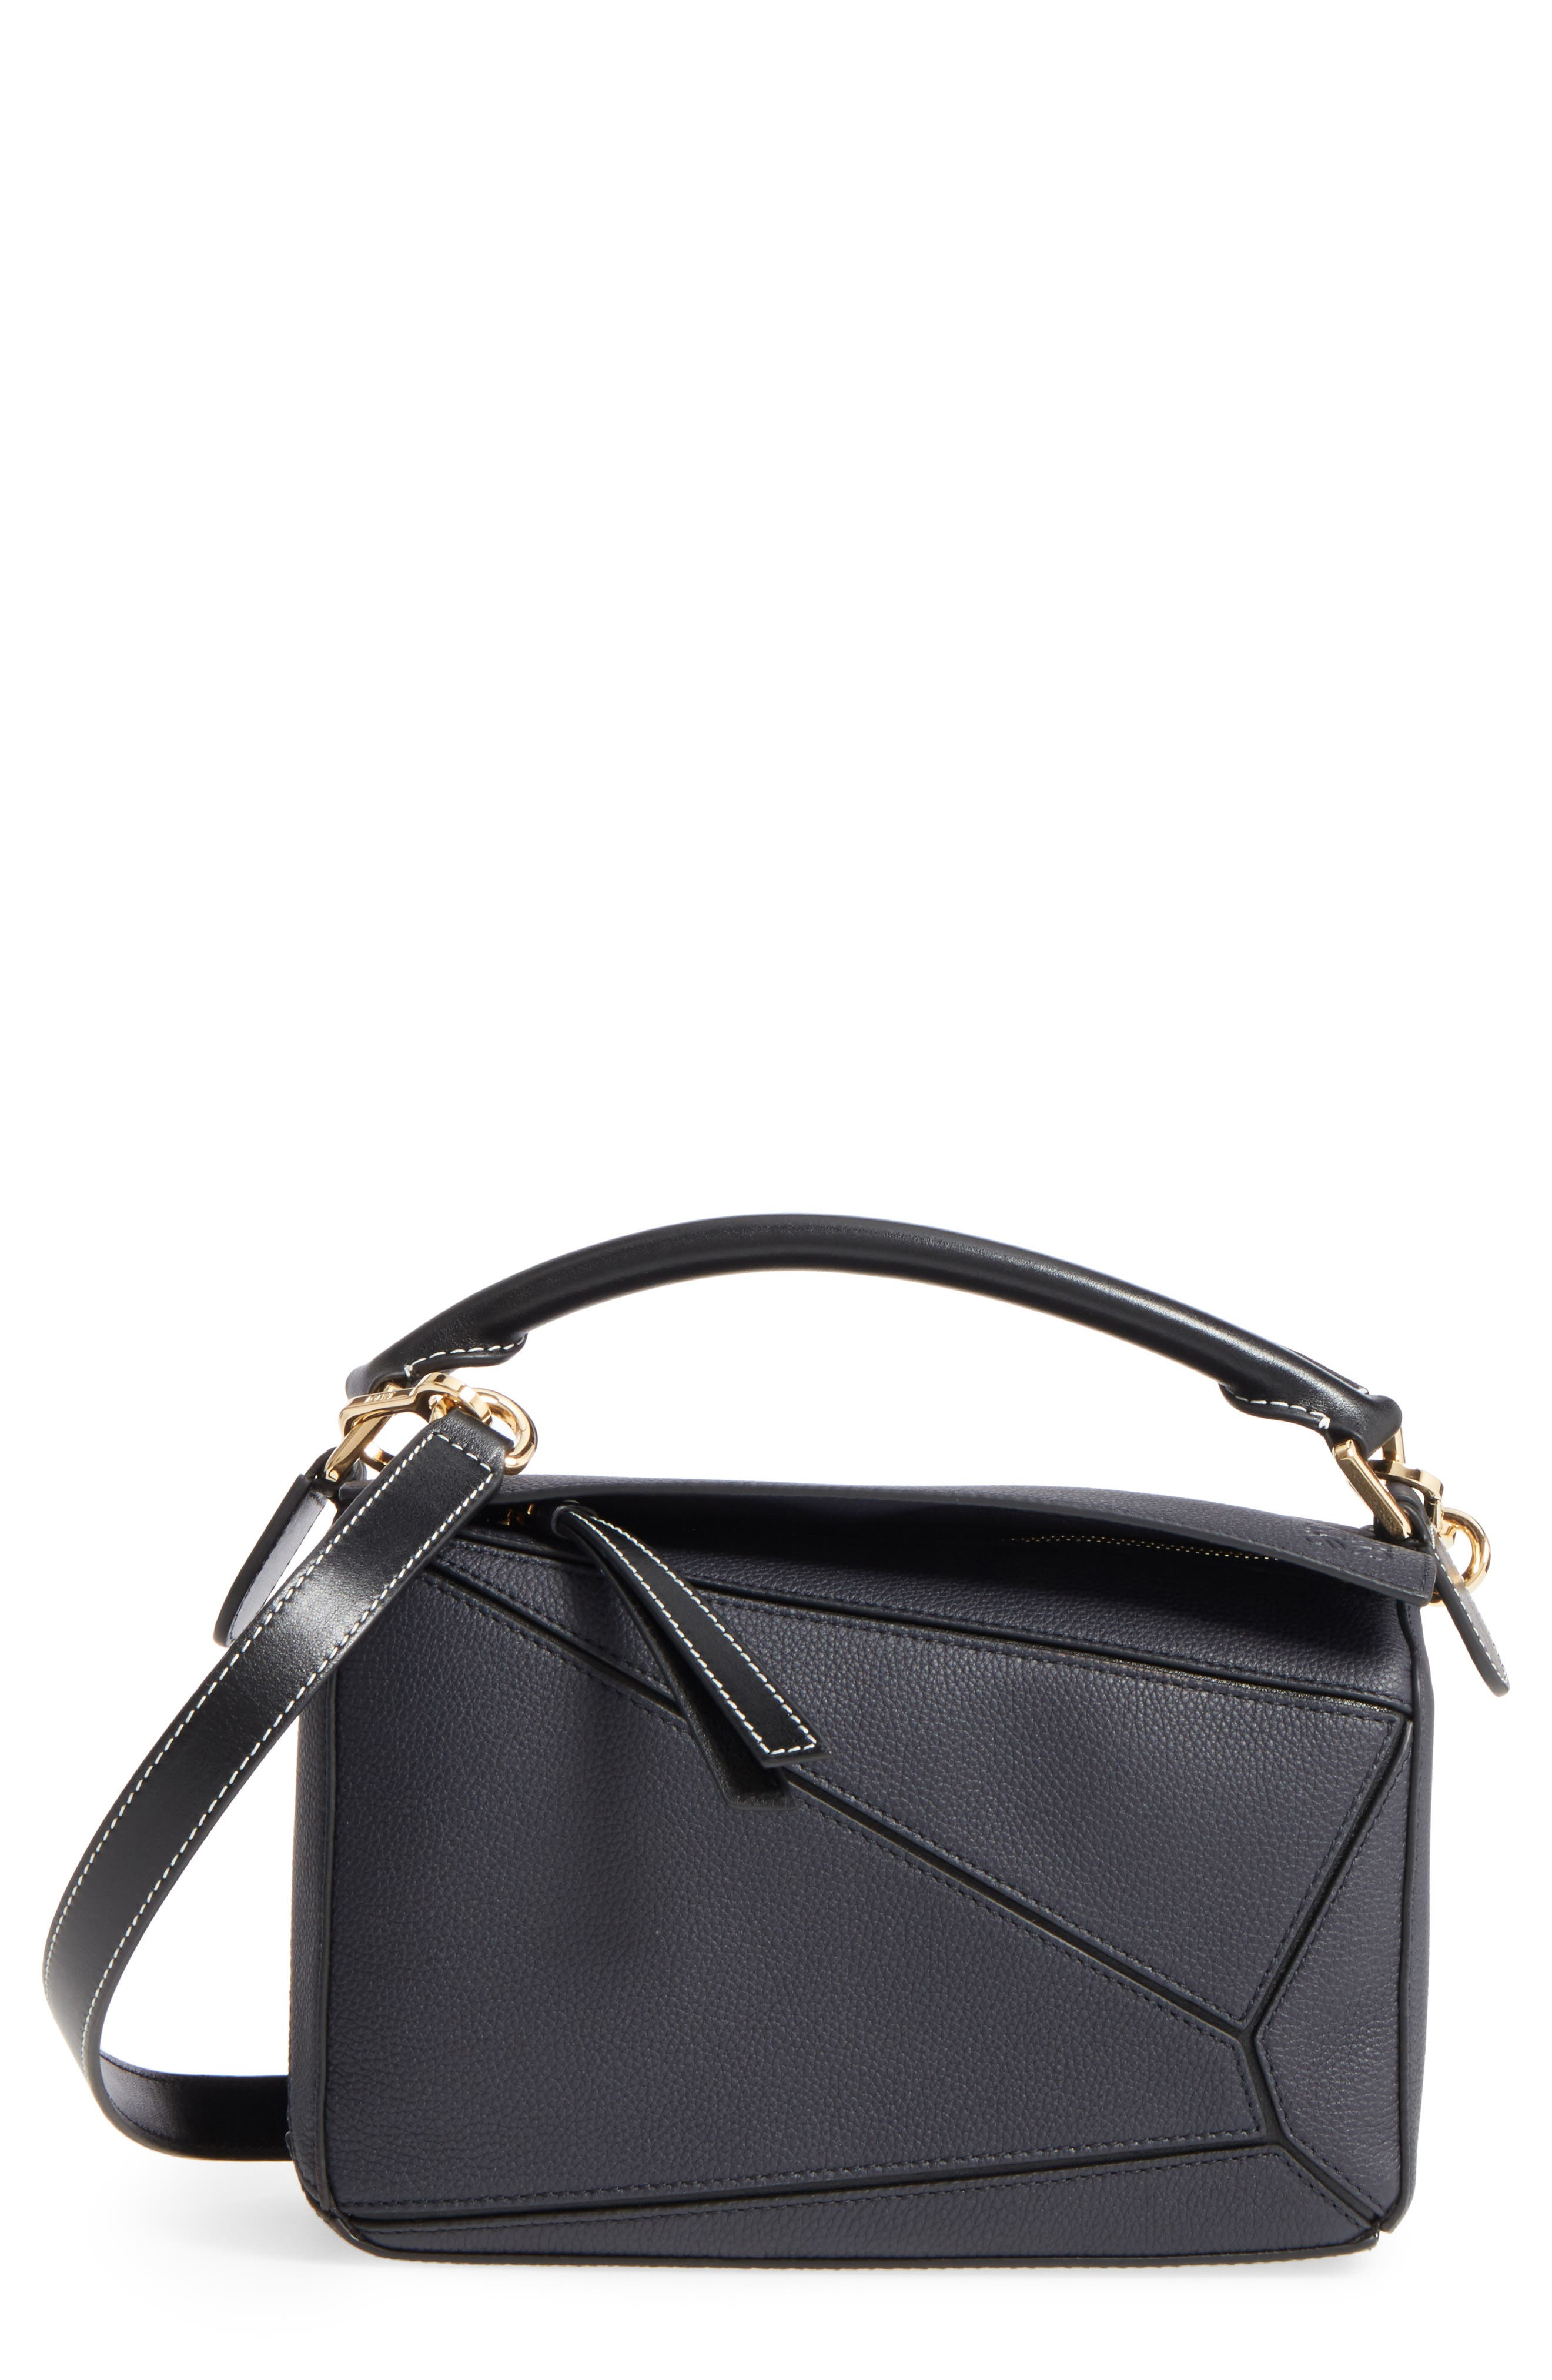 Main Image - Loewe Small Puzzle Leather Bag